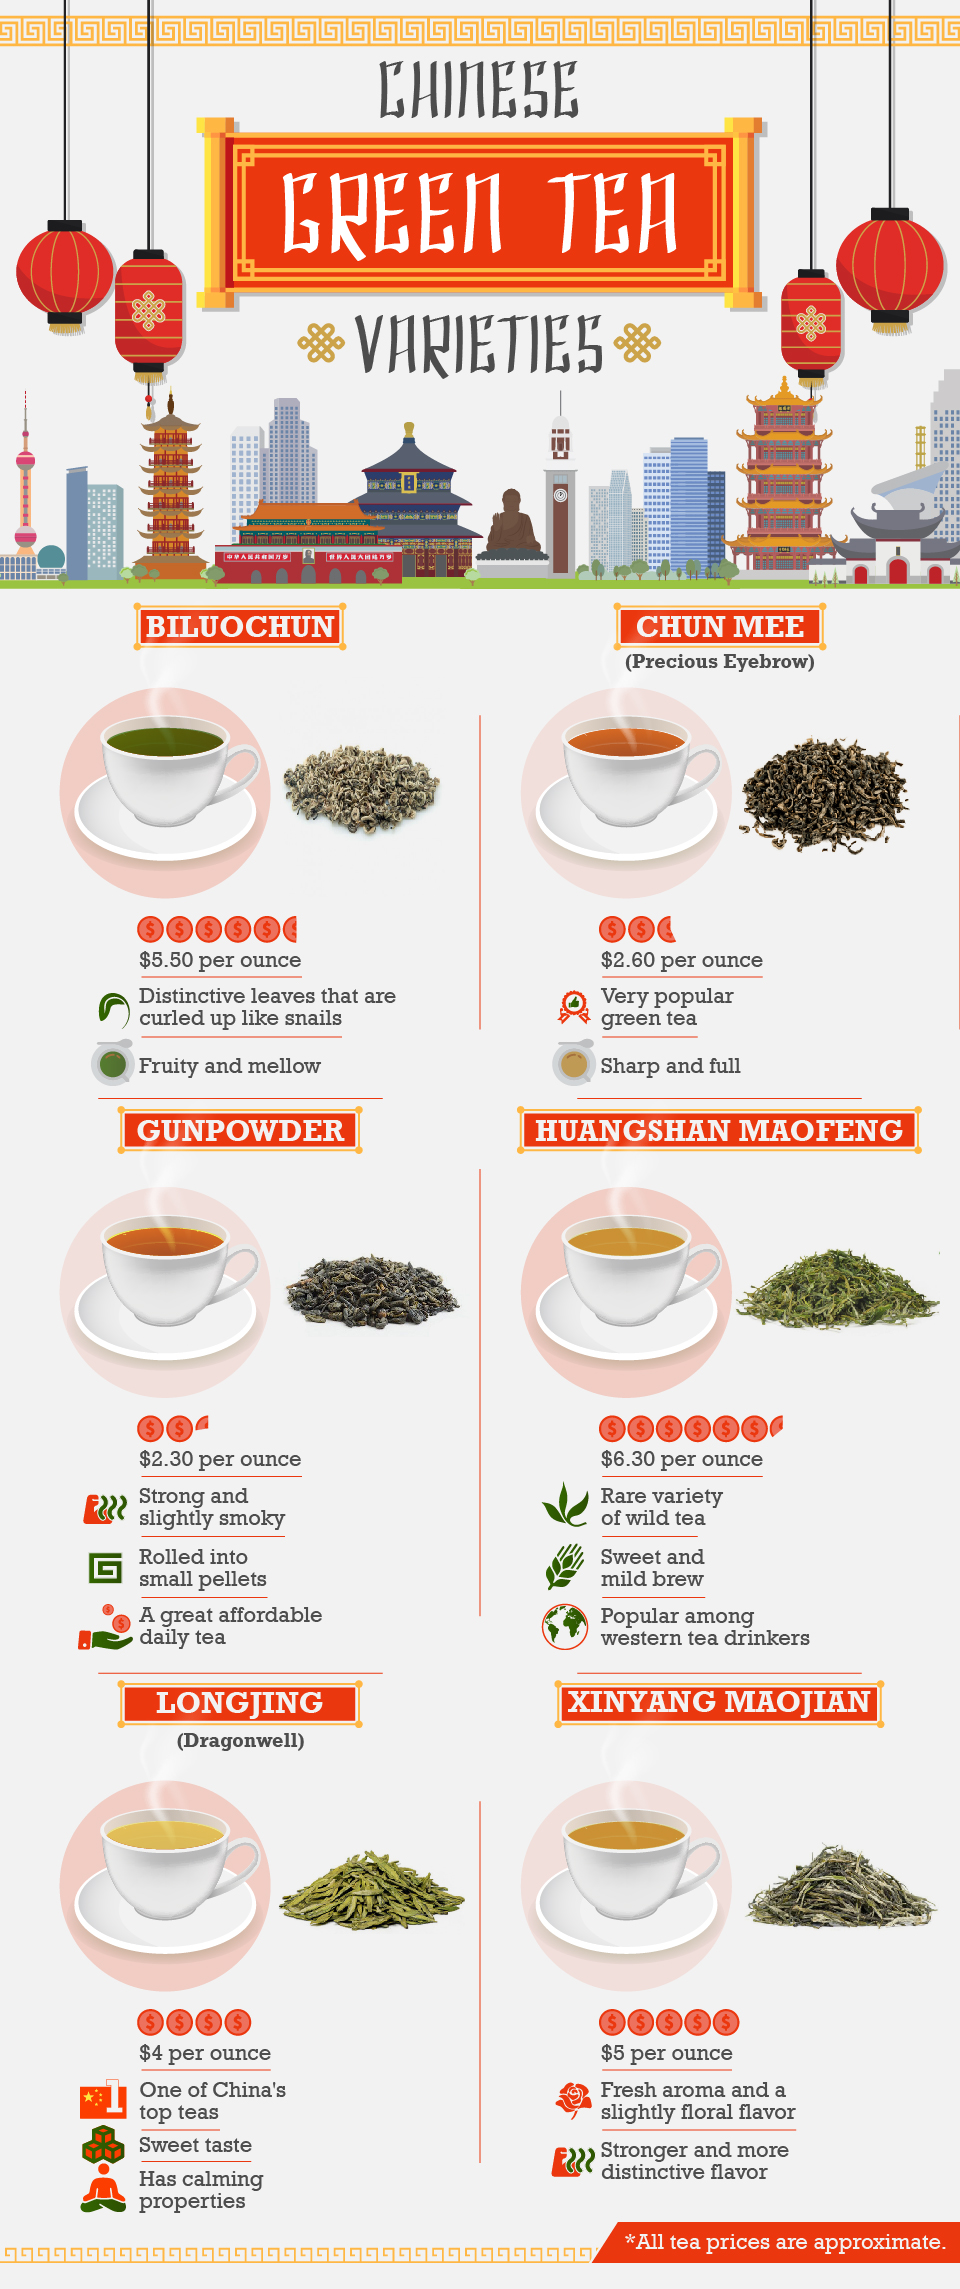 Chinese Green Tea Varieties